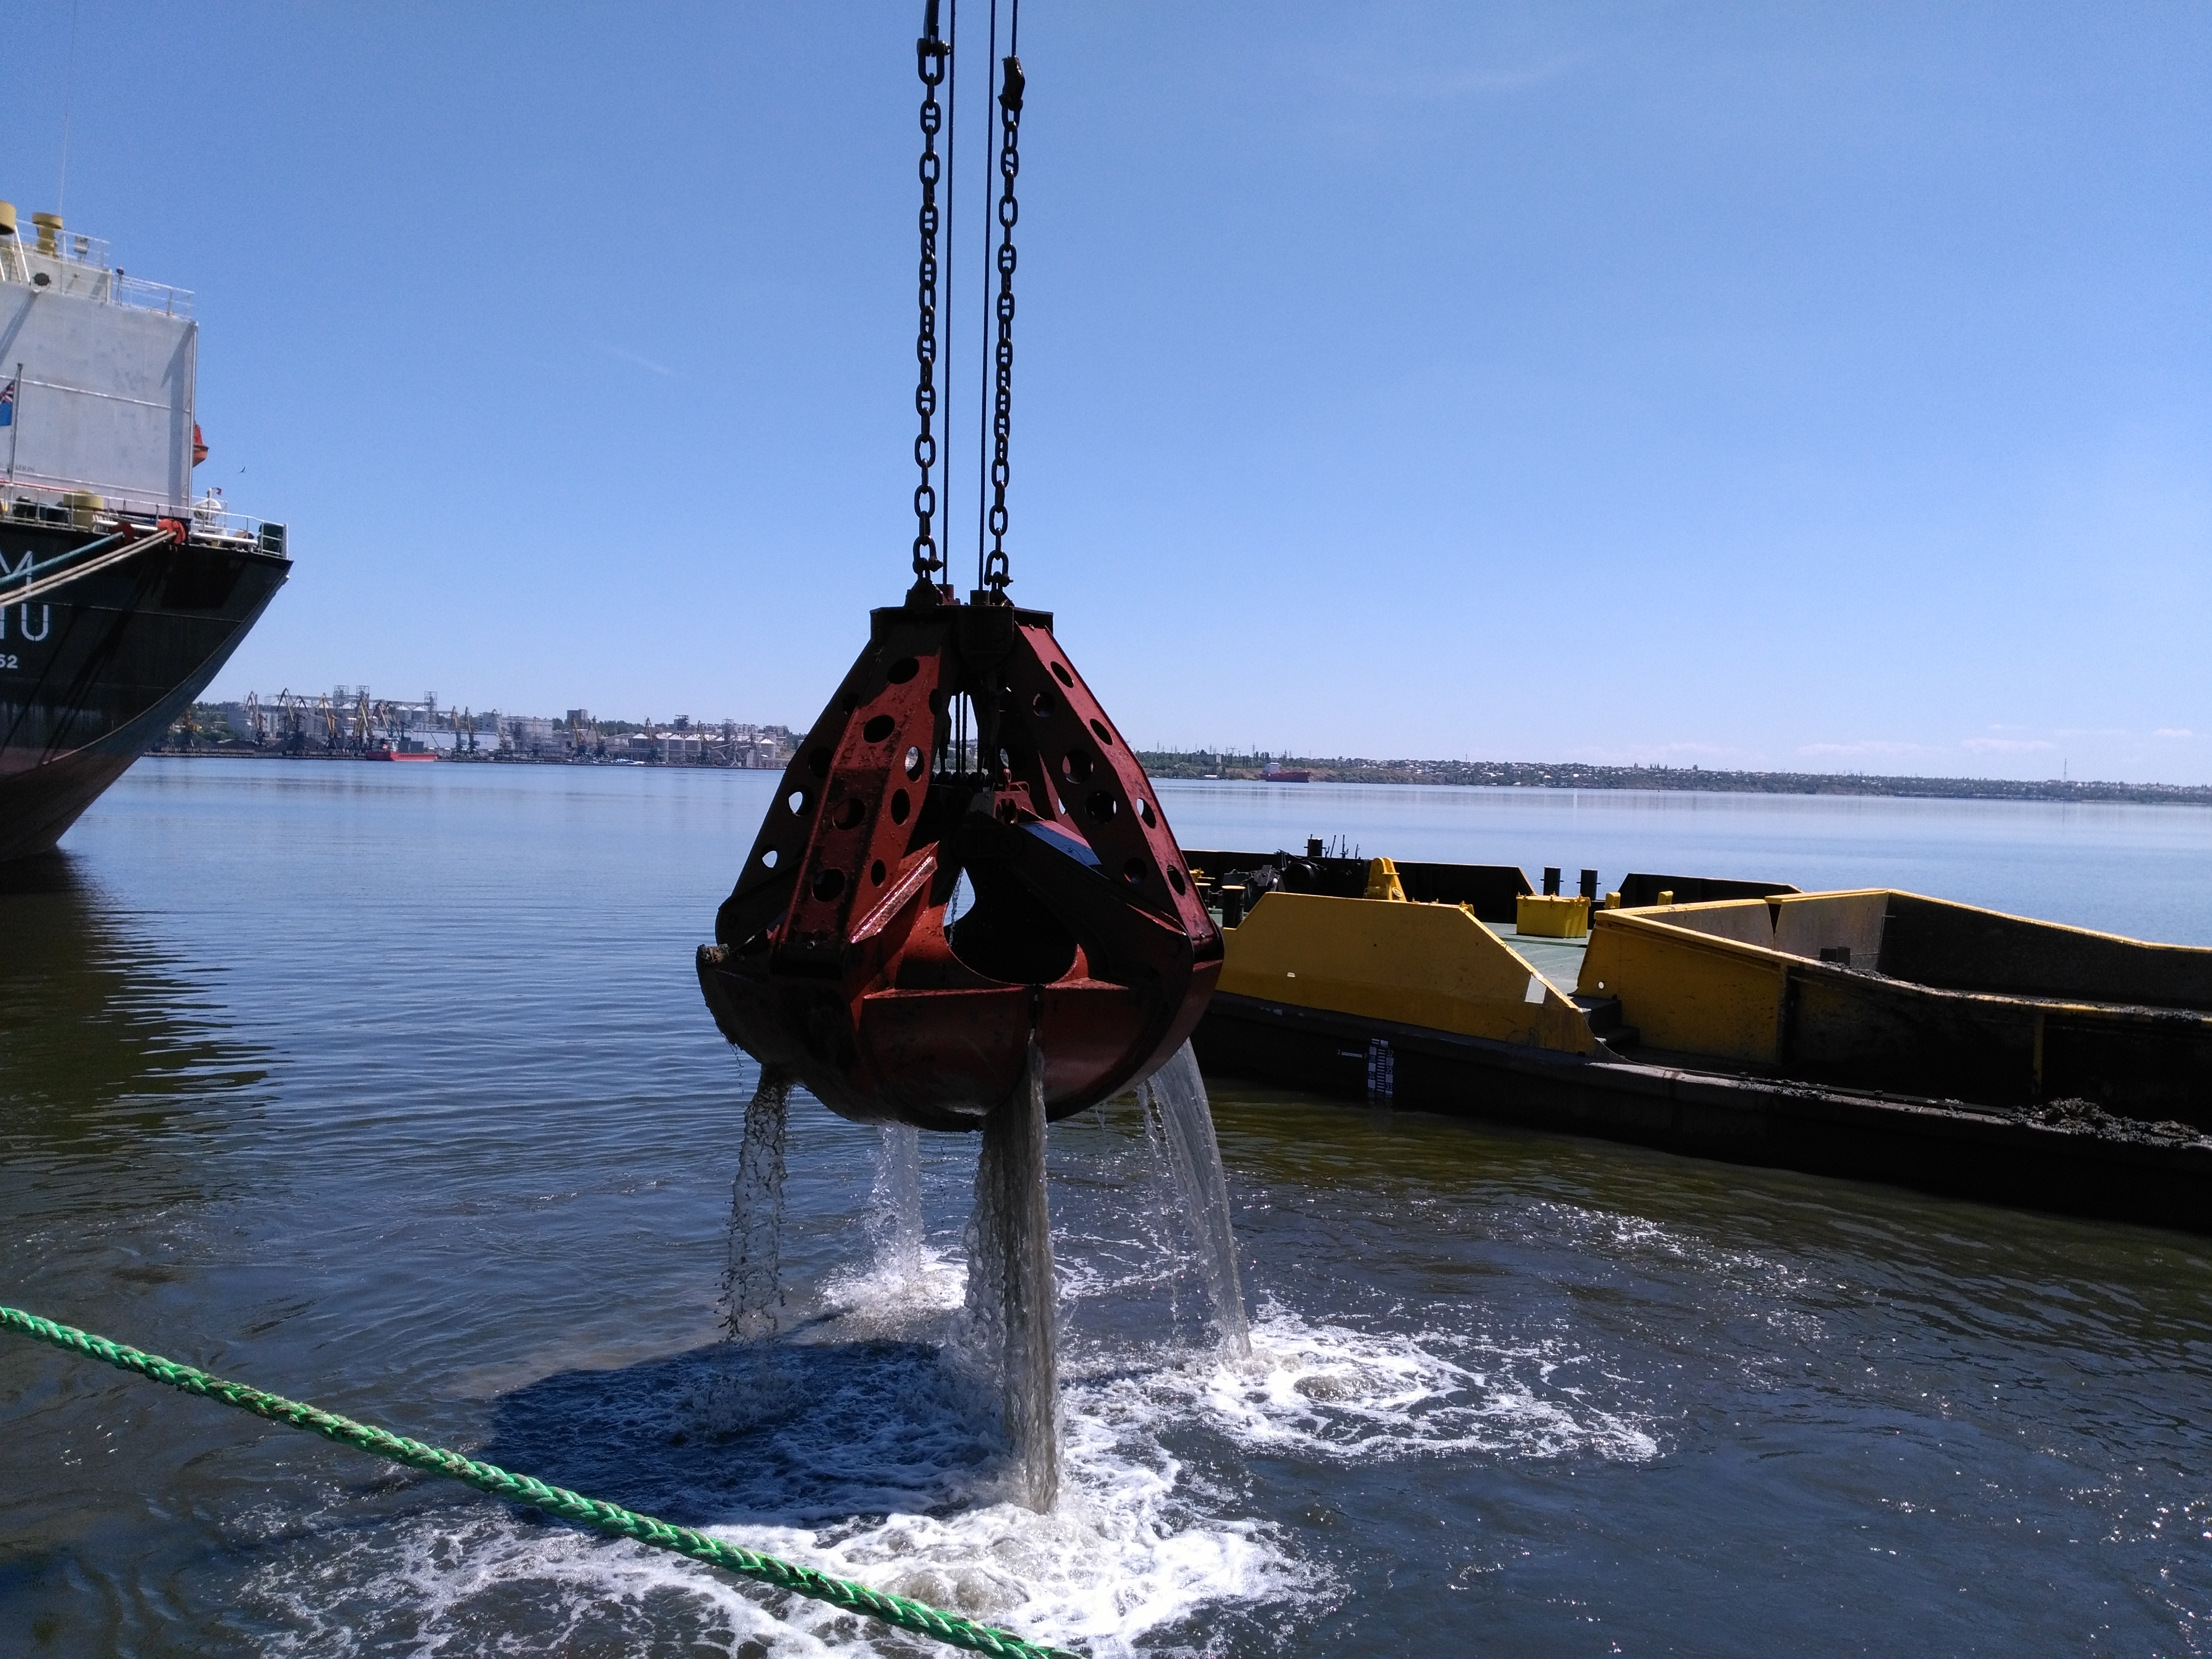 Dredging operations photo - Nika Maritime Agency